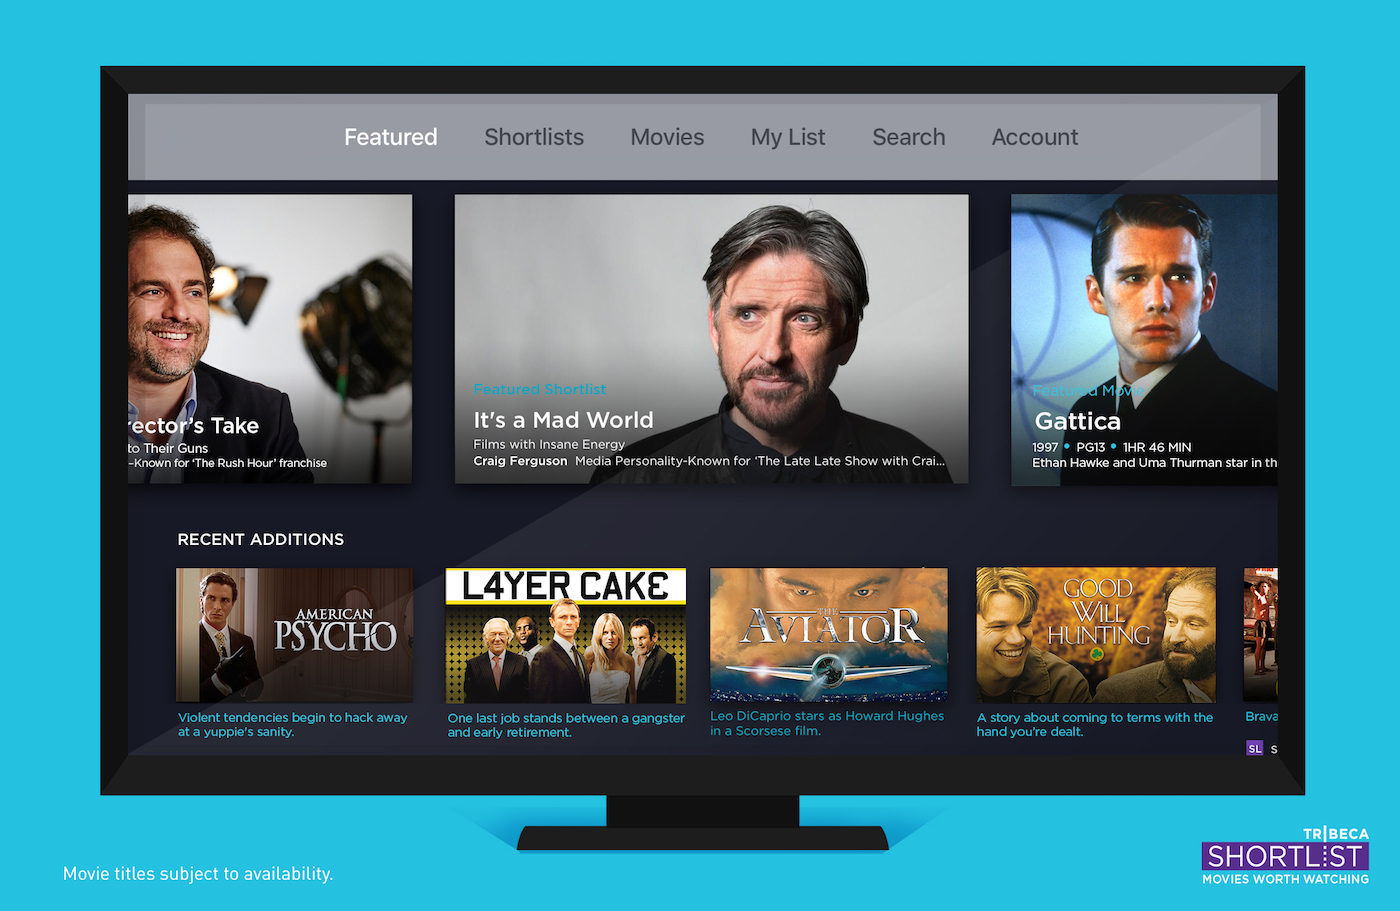 Tribeca Shortlist brings its movie-streaming app to Apple TV